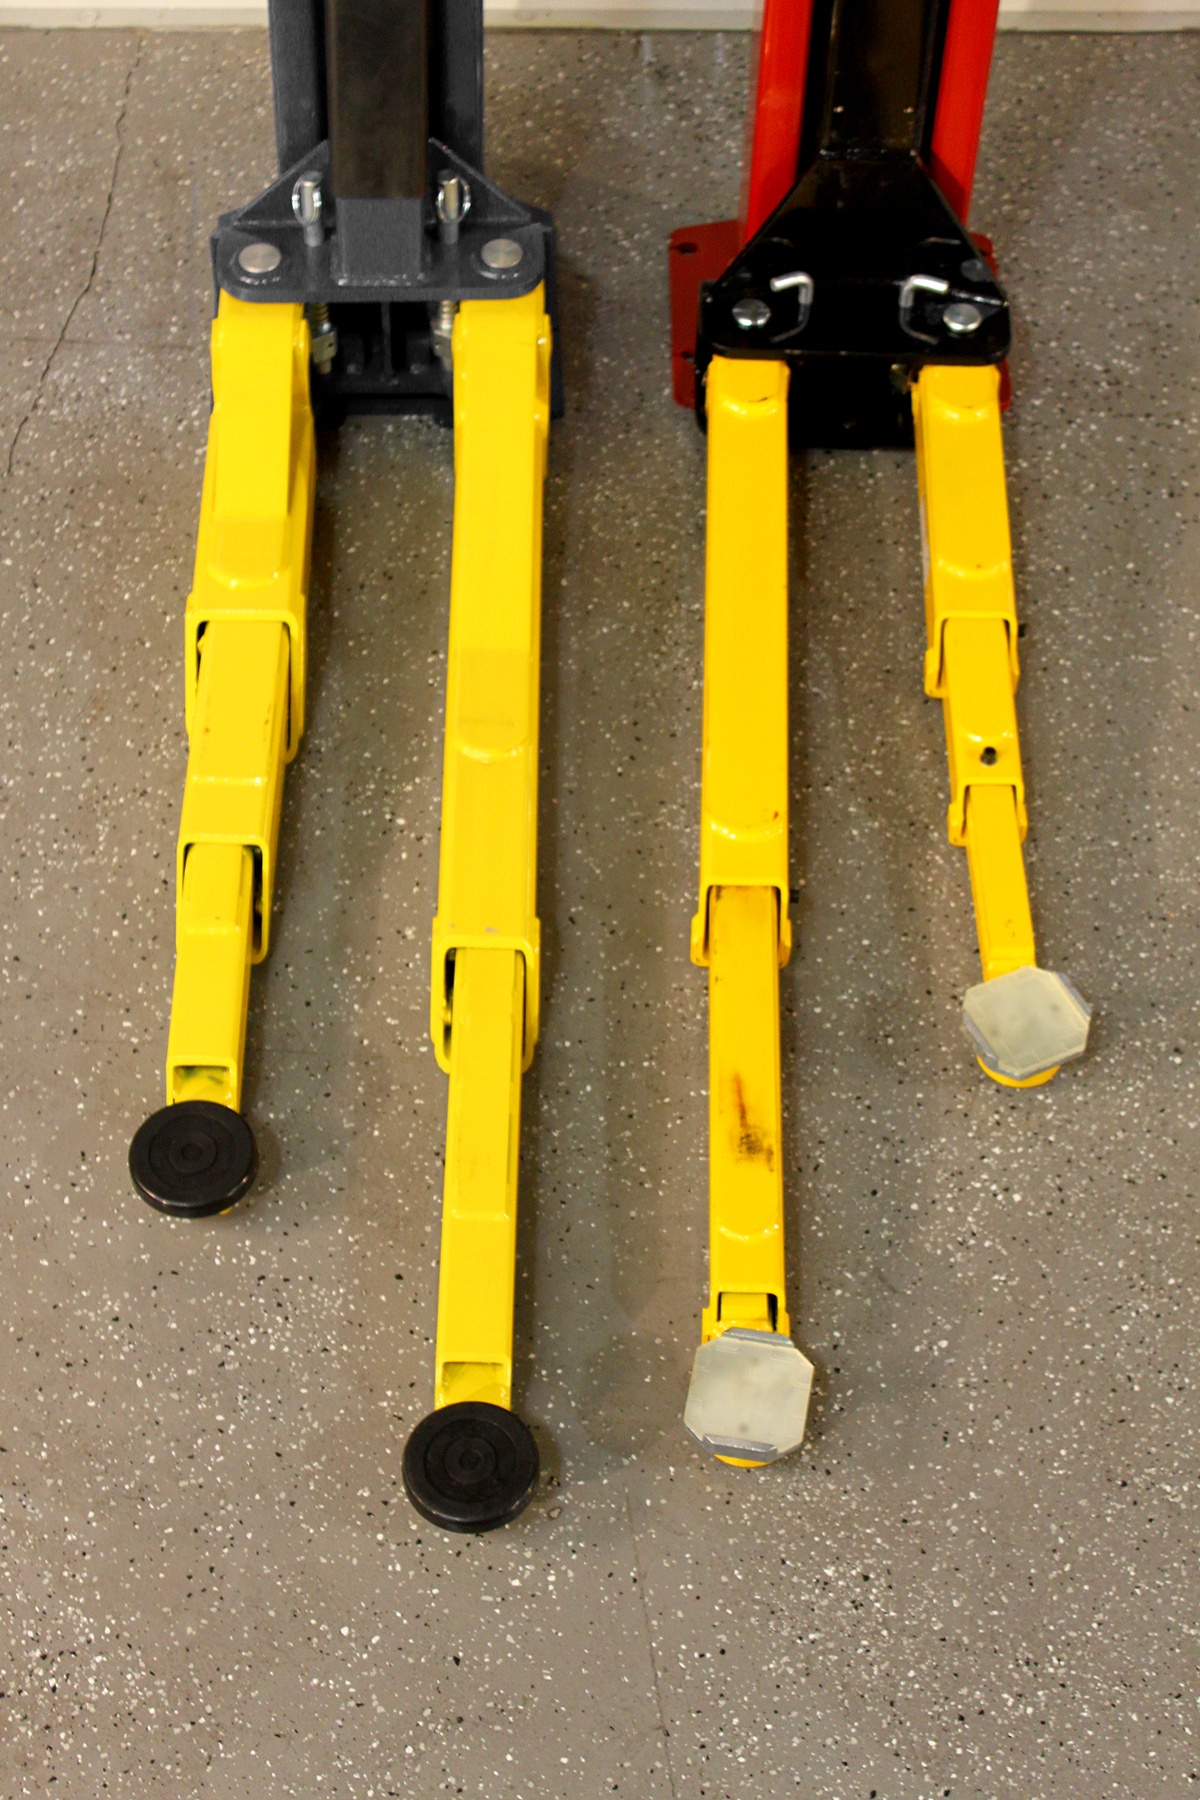 BendPak Two-Post lift Compared to Challenger Lift Arms Extended